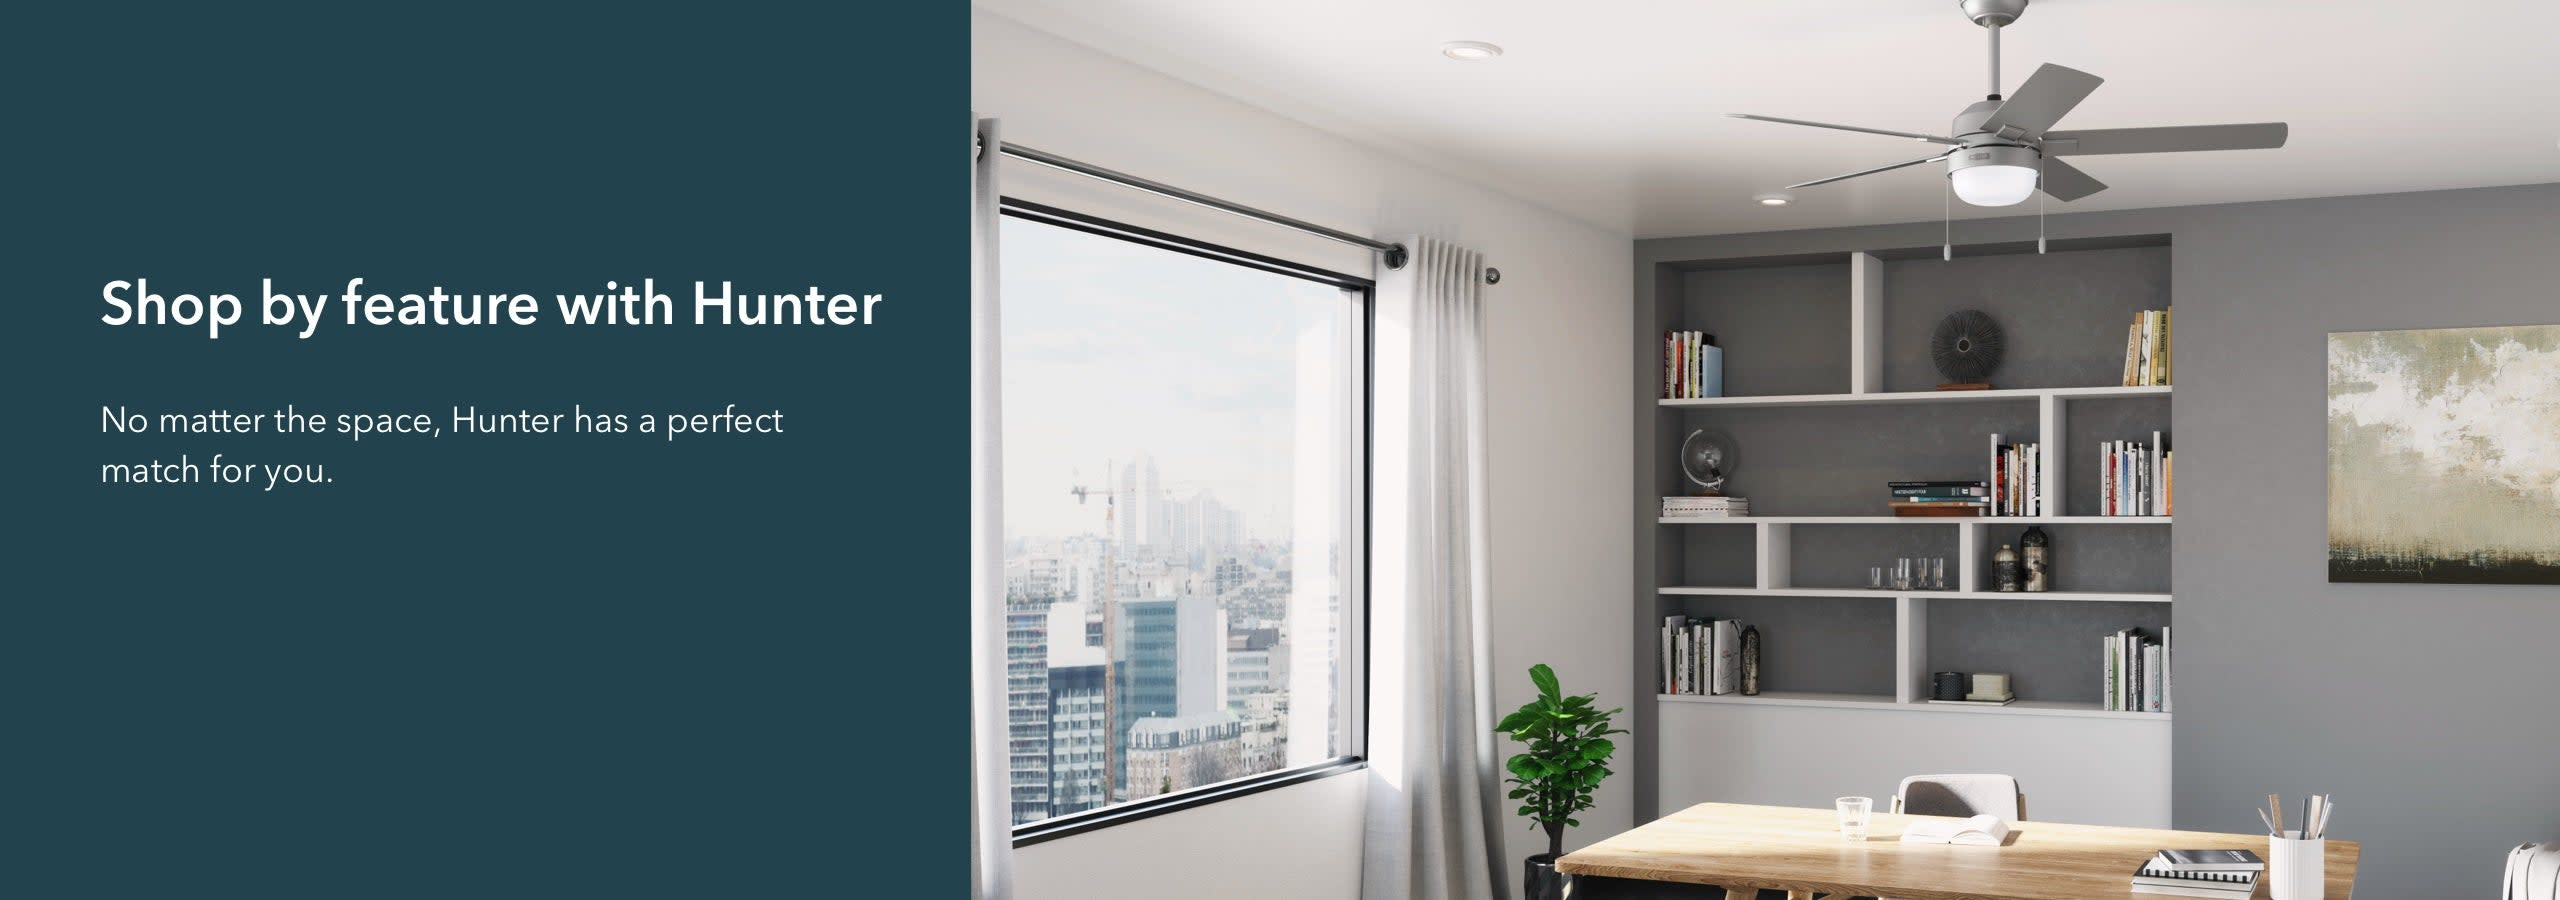 Shop by feature banner with office view of the city featuring a hunter ceiling fan